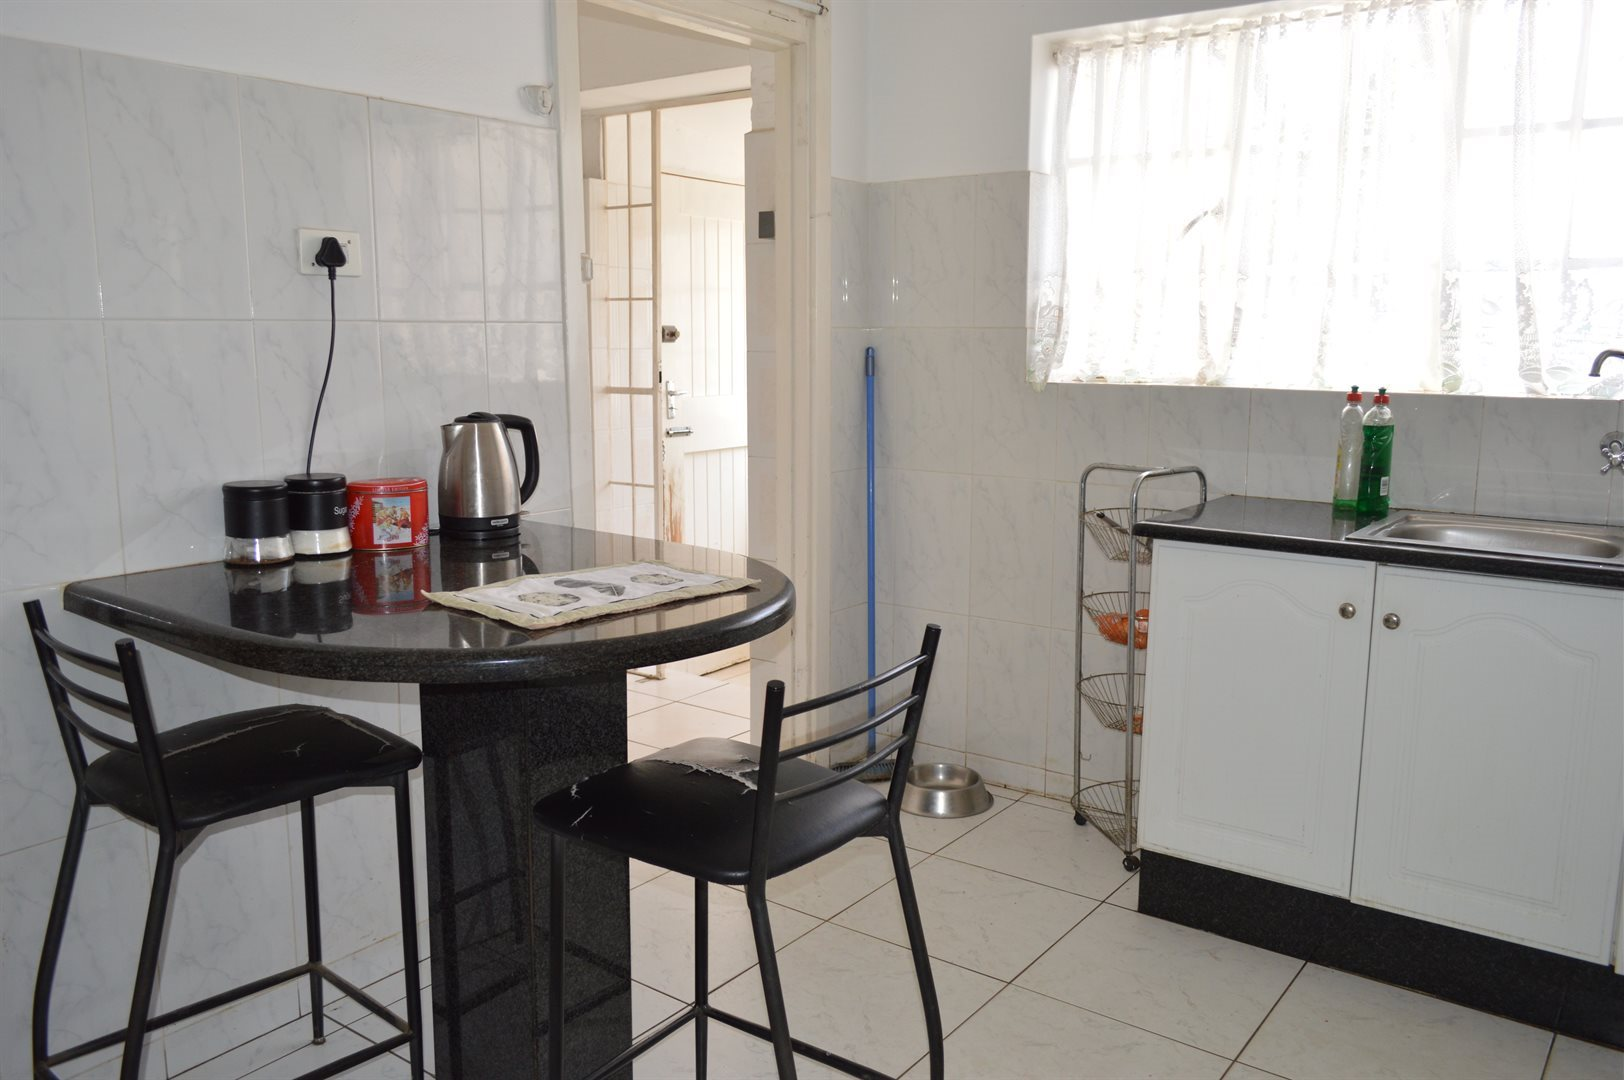 Highlands North property for sale. Ref No: 13649352. Picture no 8